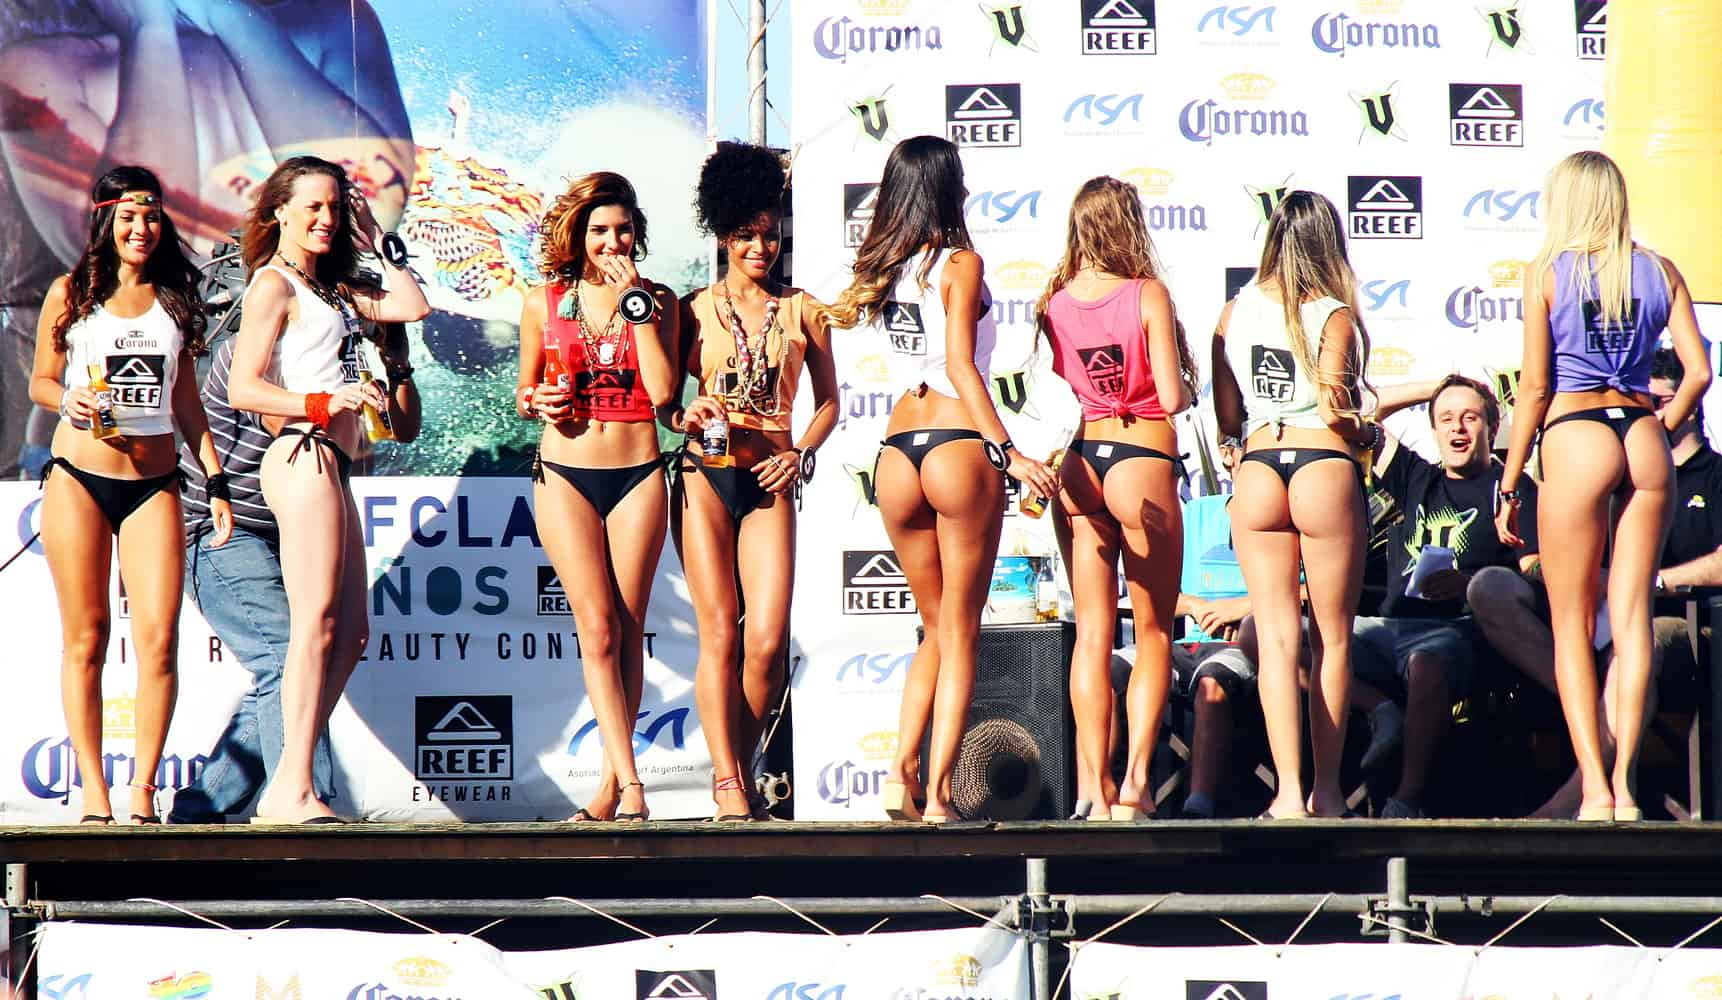 REEF CLASSIC 2014 canty ramos95